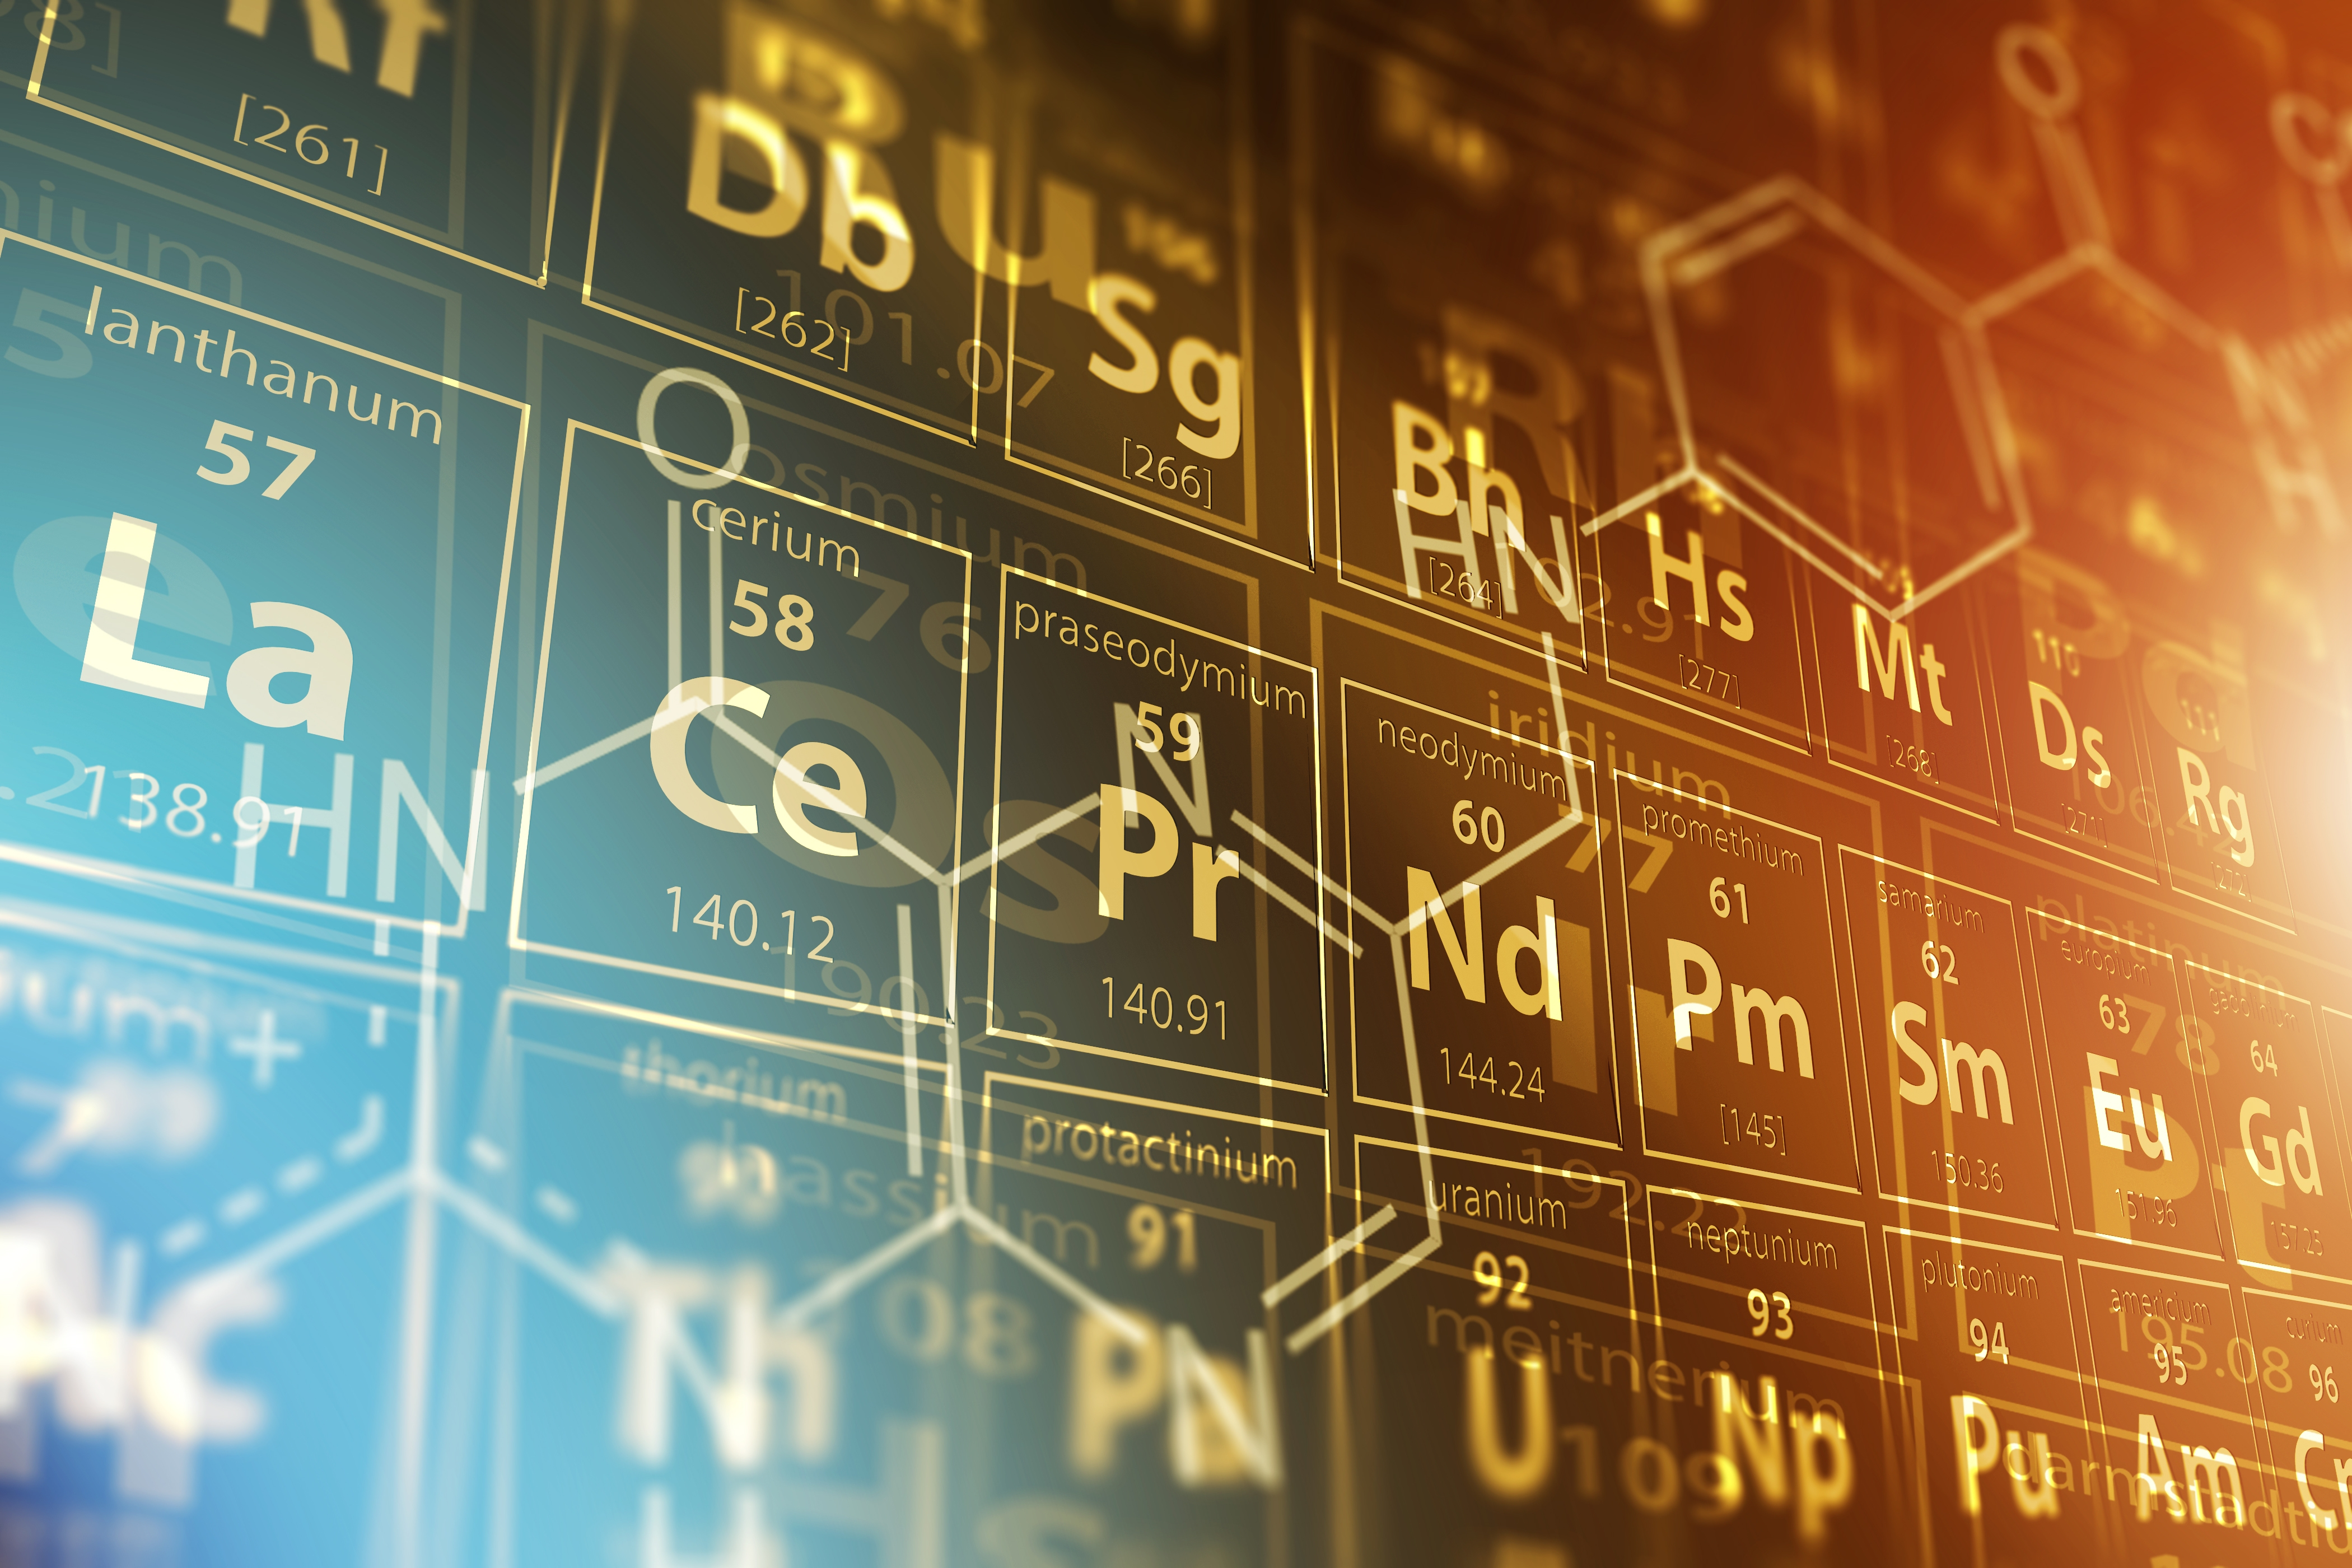 Six elements named after scientists sciencing urtaz Gallery